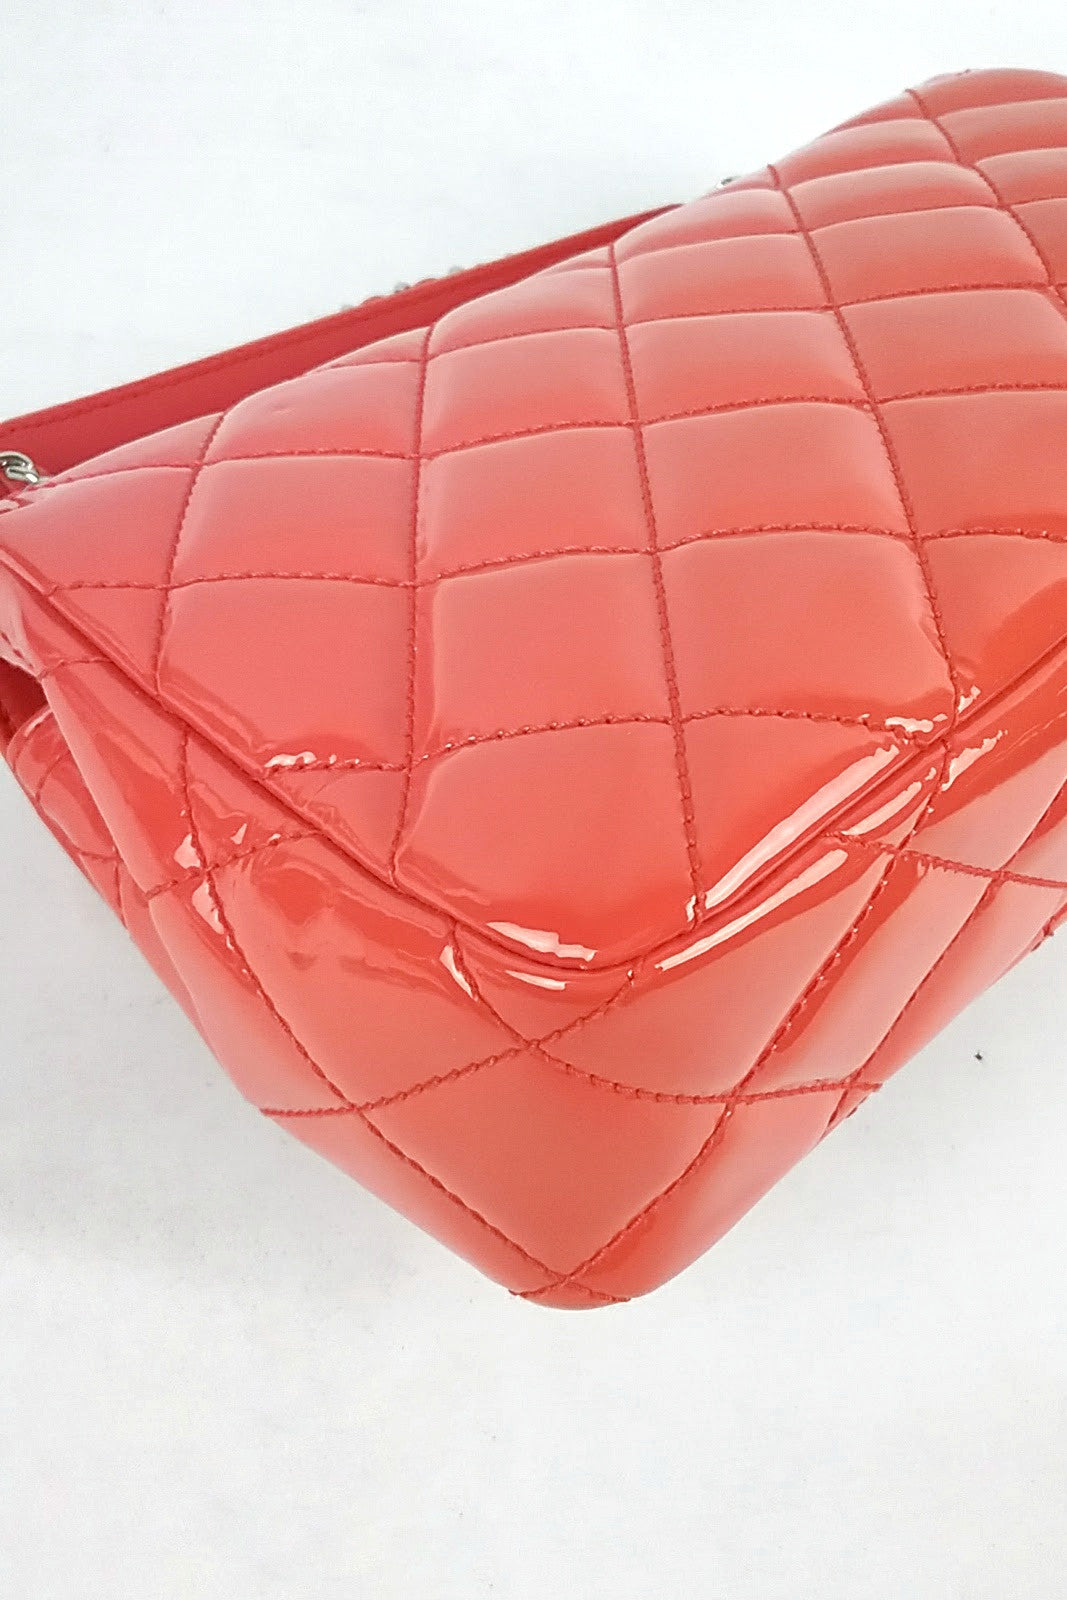 [Limited Ed.] Bright Orange Patent Leather Flap Bag